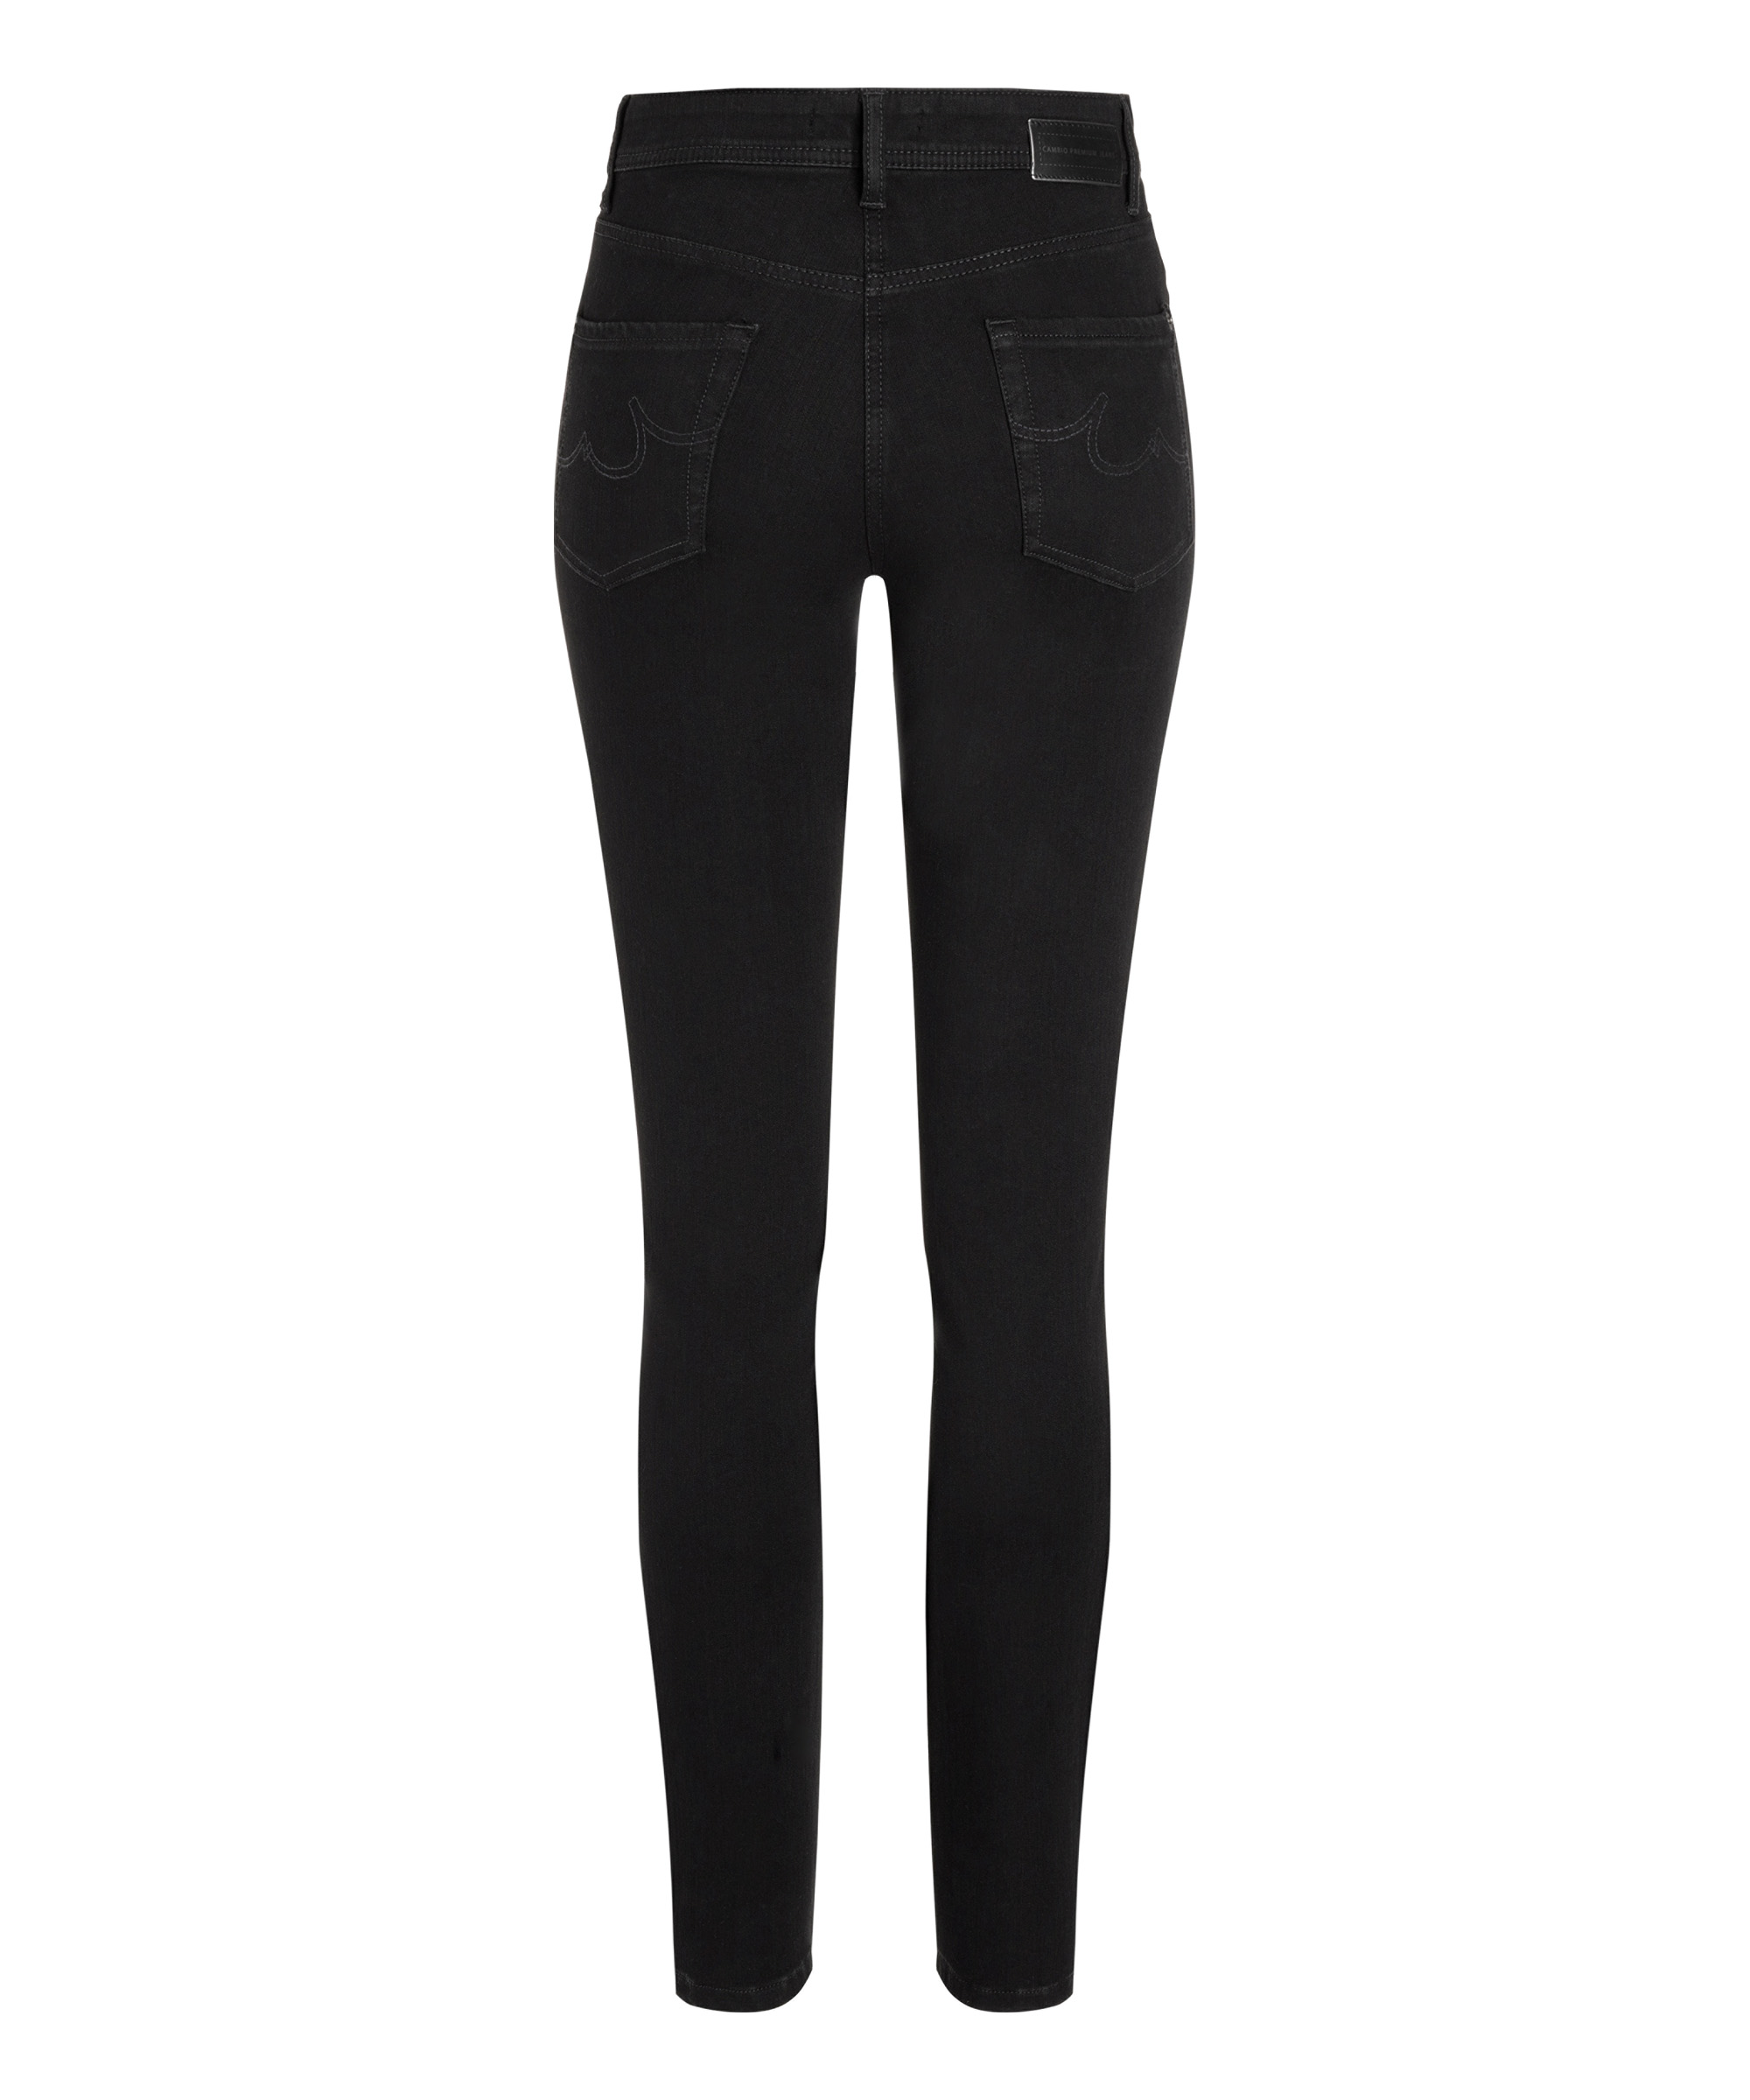 Cambio Jeans Parla BASIC RINSED WASHED